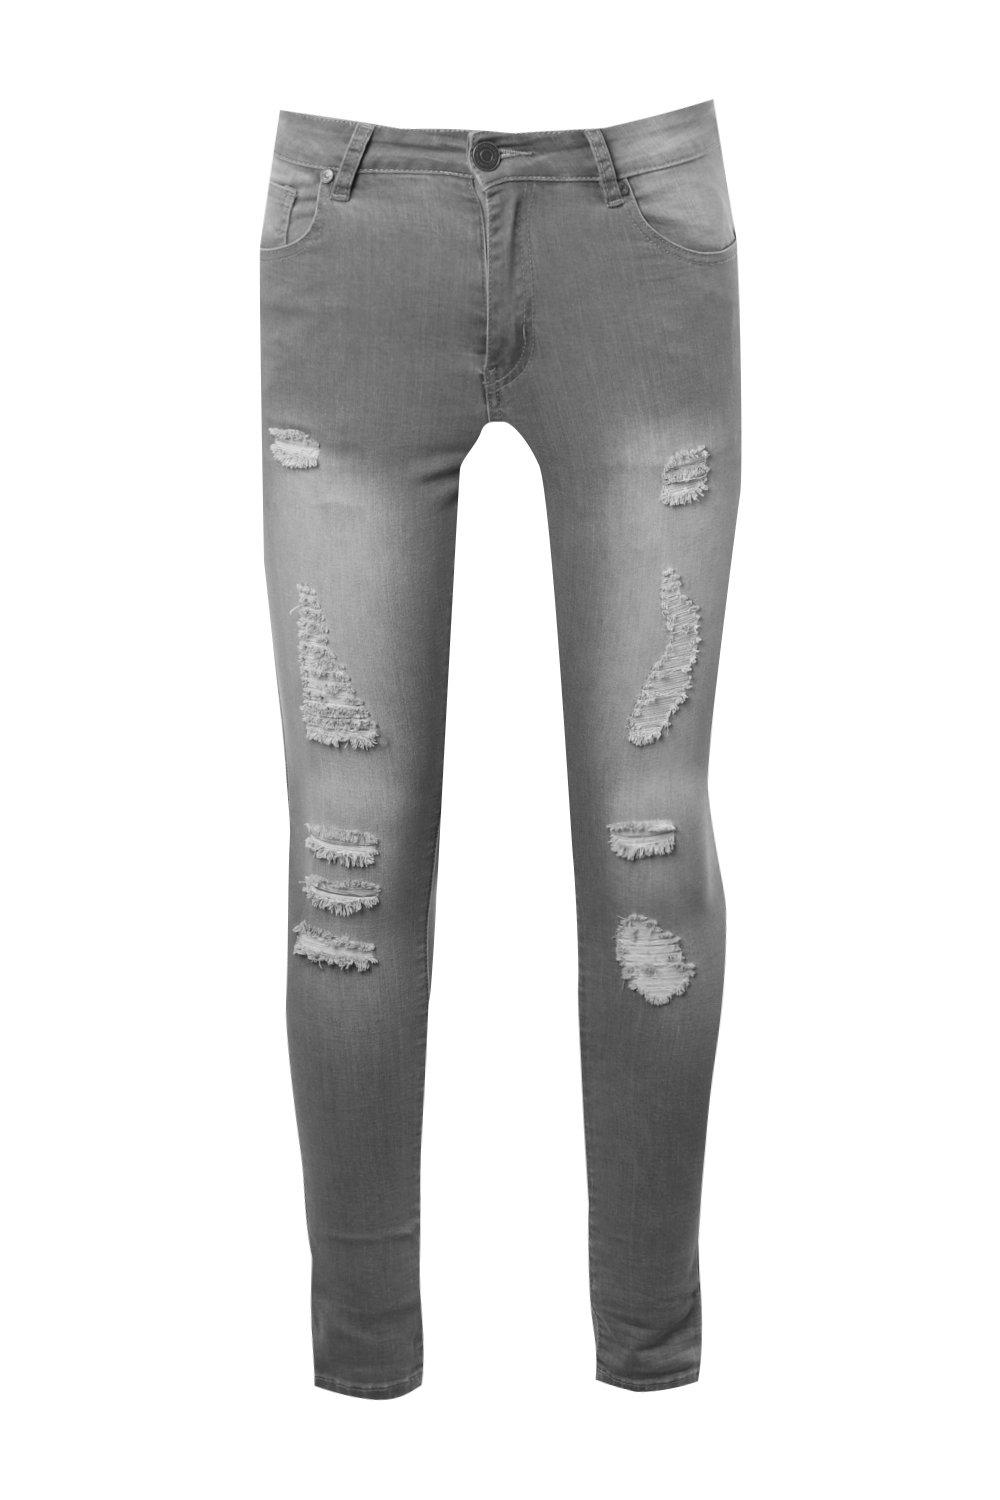 Ripped On Jeans Grey Spray grey Skinny Over All 8wOxAnq4gR